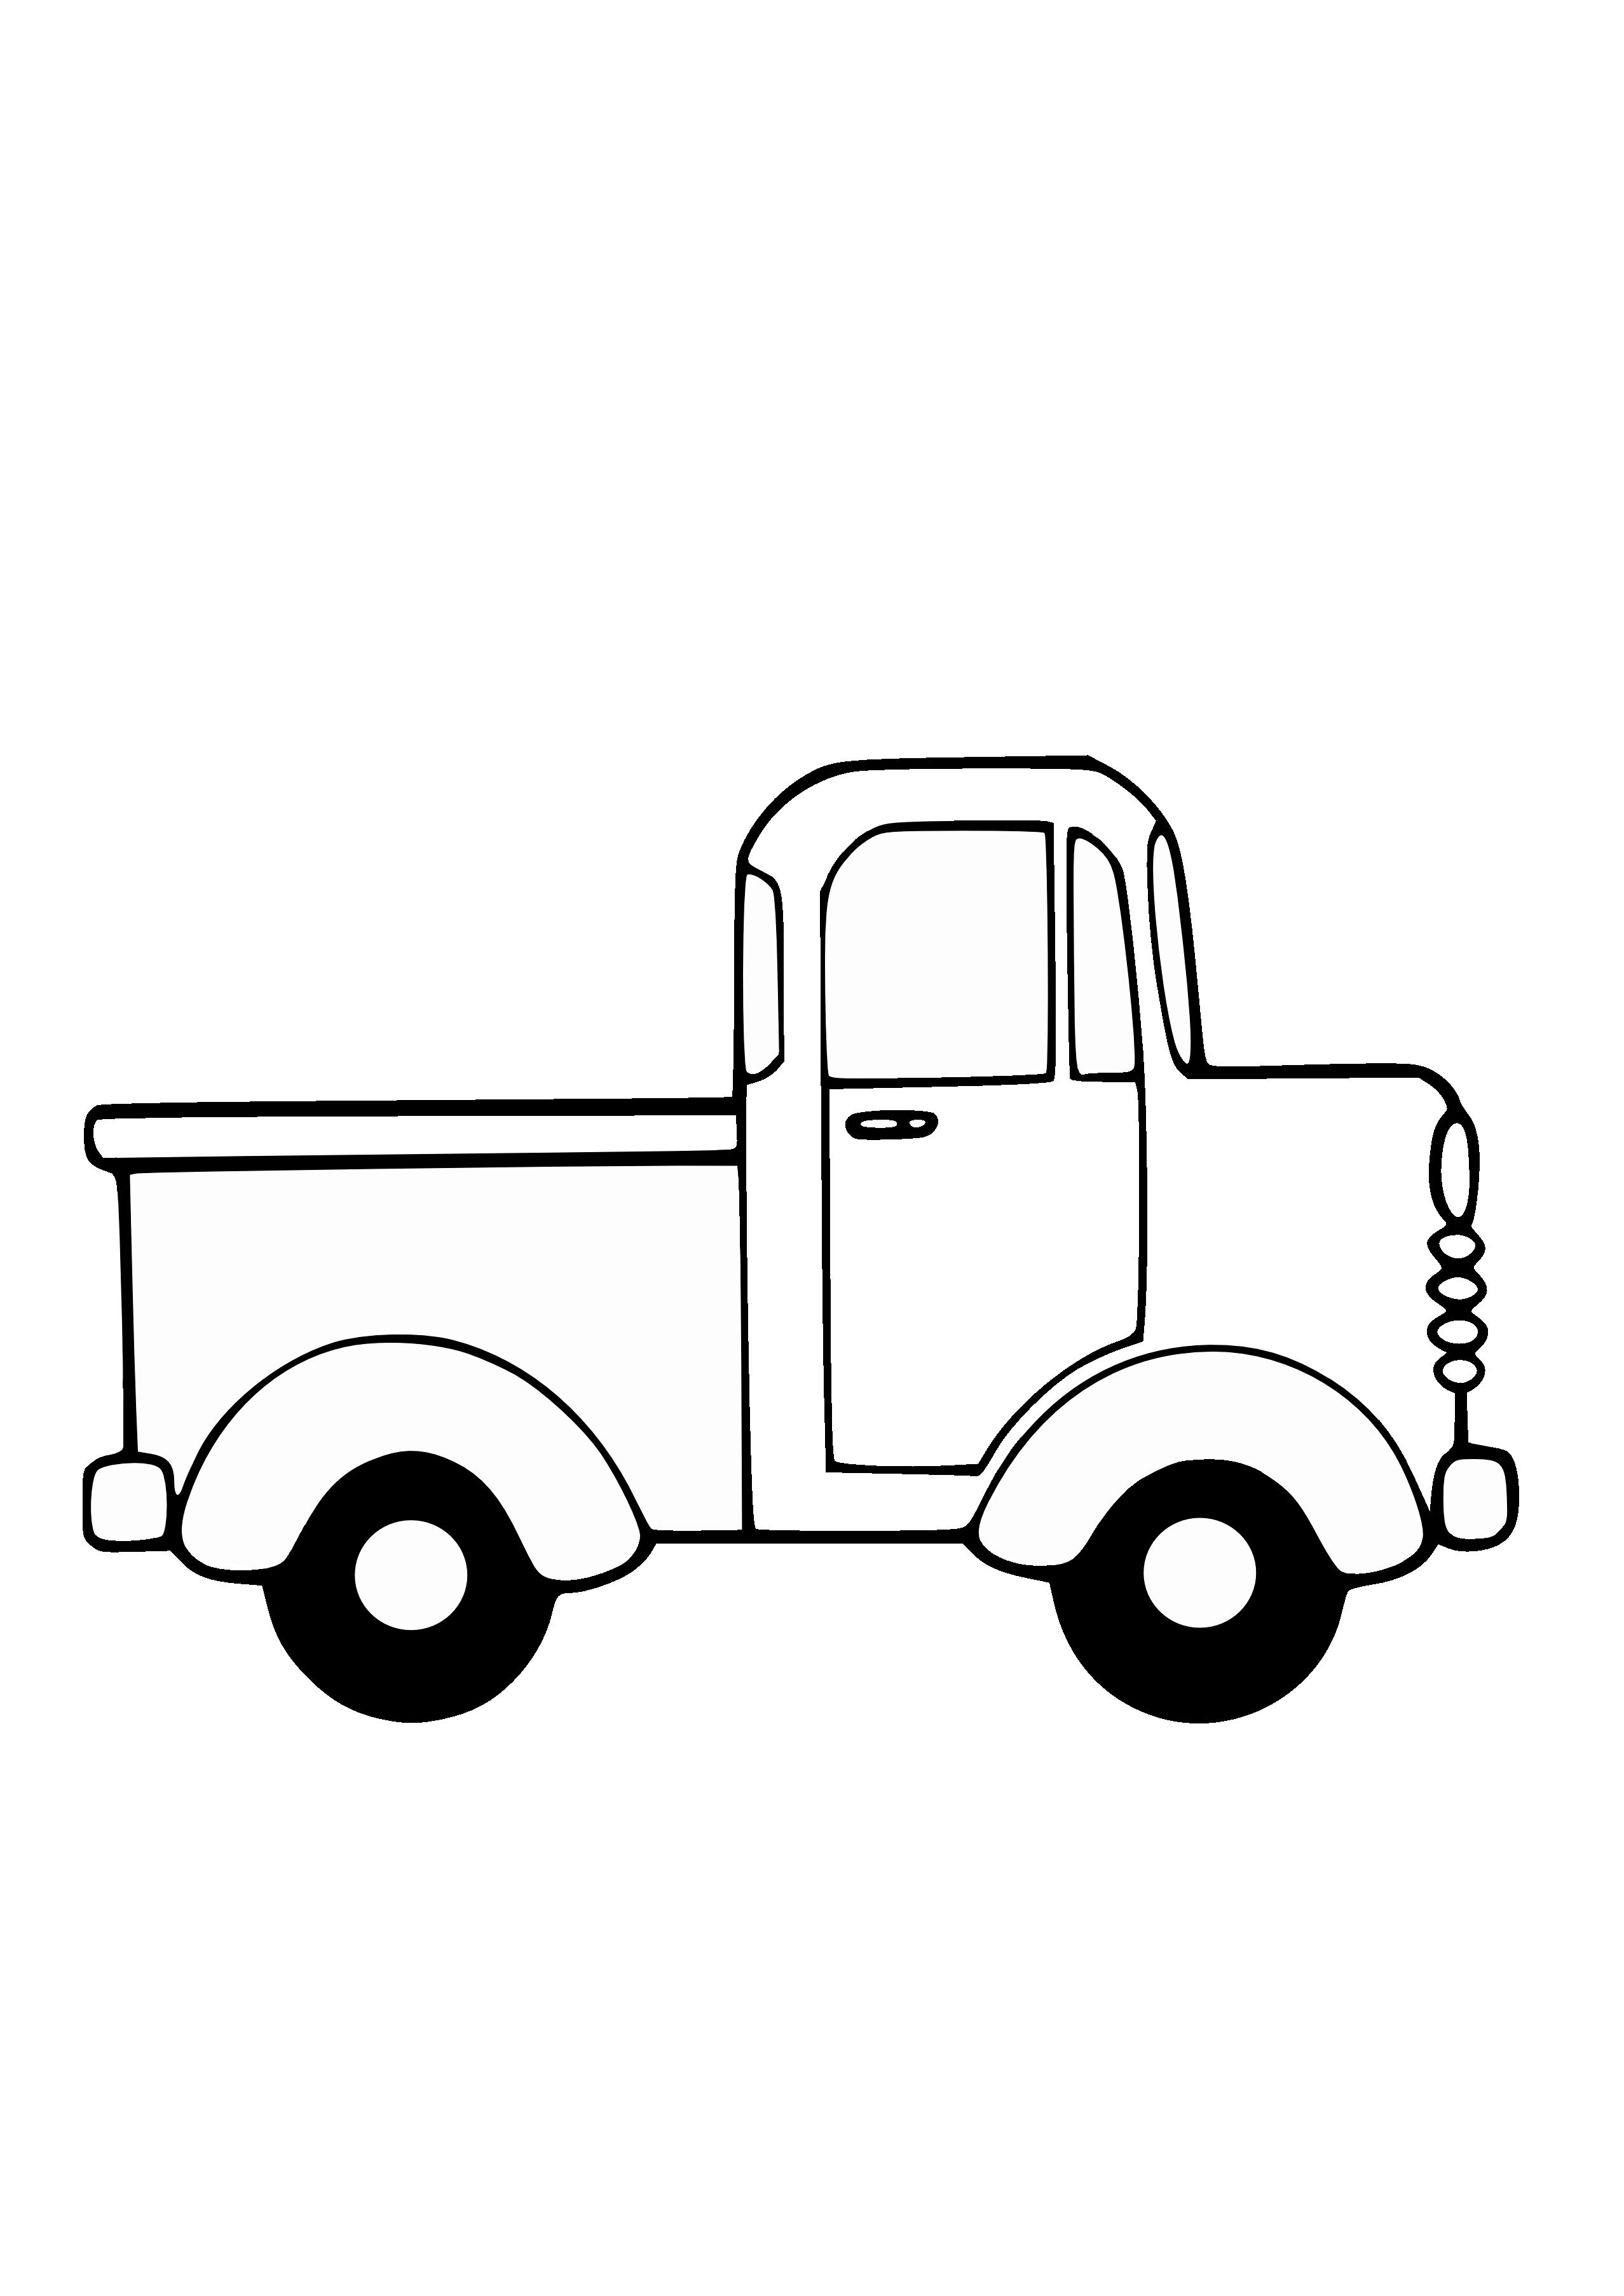 Recycling Truck Coloring Page Awesome Free Truck Image Download